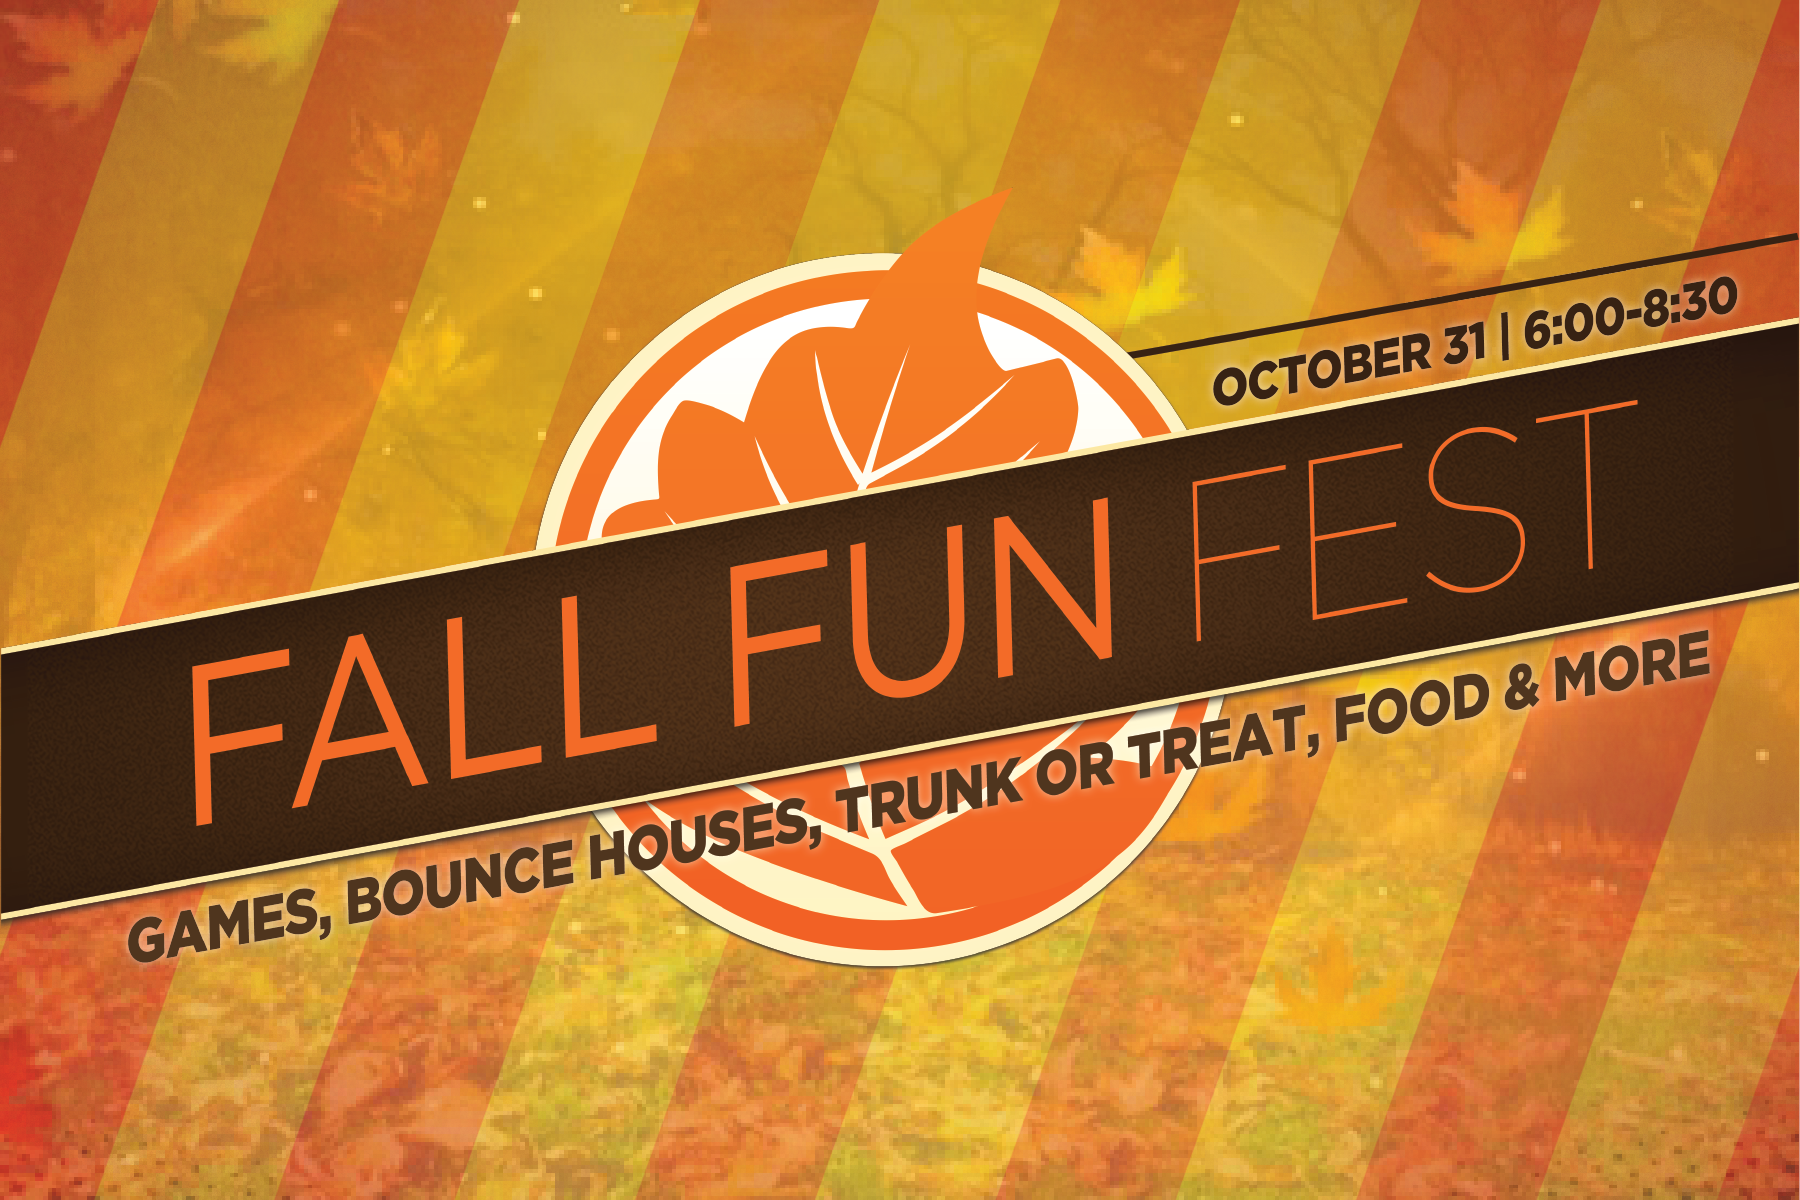 Fallfunfestgraphic-01.png